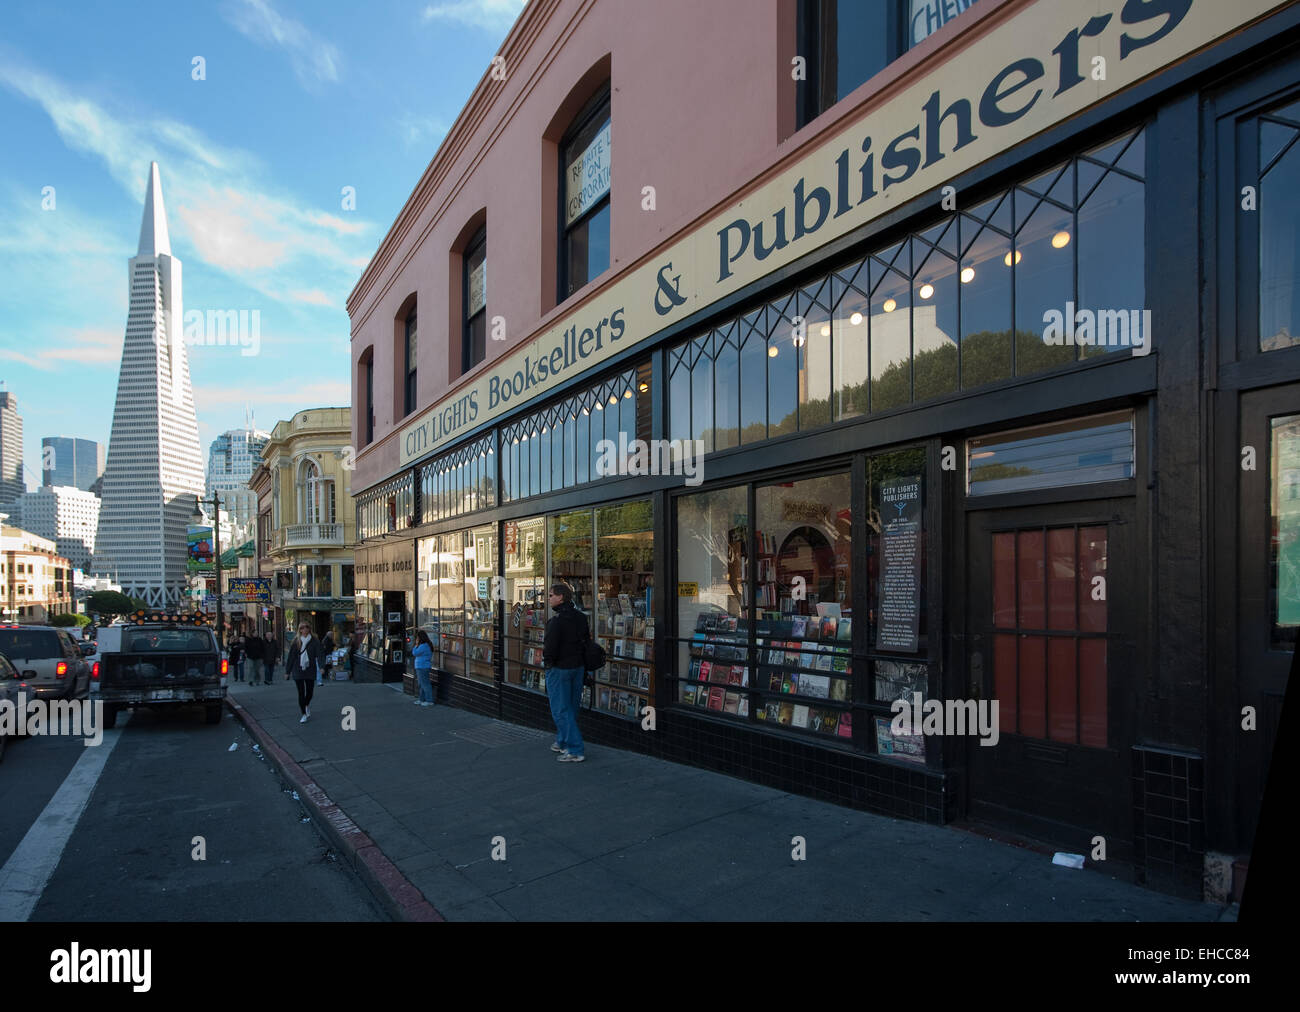 Northern Lights Booksellers, landmark book store in the North Beach neighborhood of San Francisco. - Stock Image